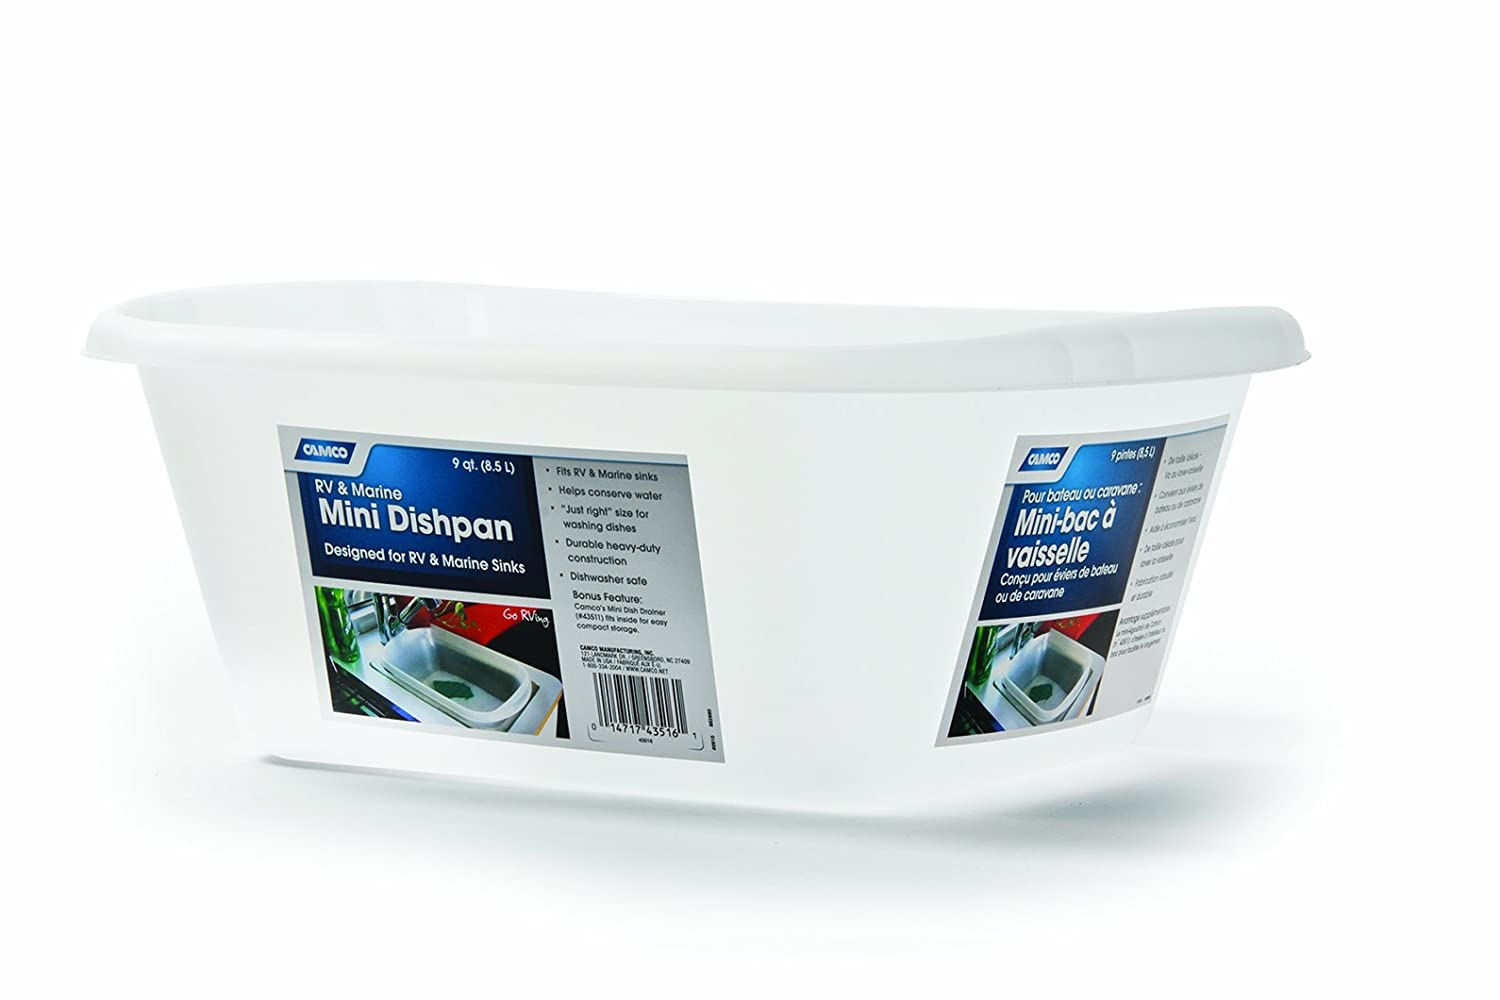 Camco Mini Dish Wash Pan - Perfect for RV Sinks, Marine Sinks, Compact Kitchen Sinks, Camping and Outdoors - White (43516)